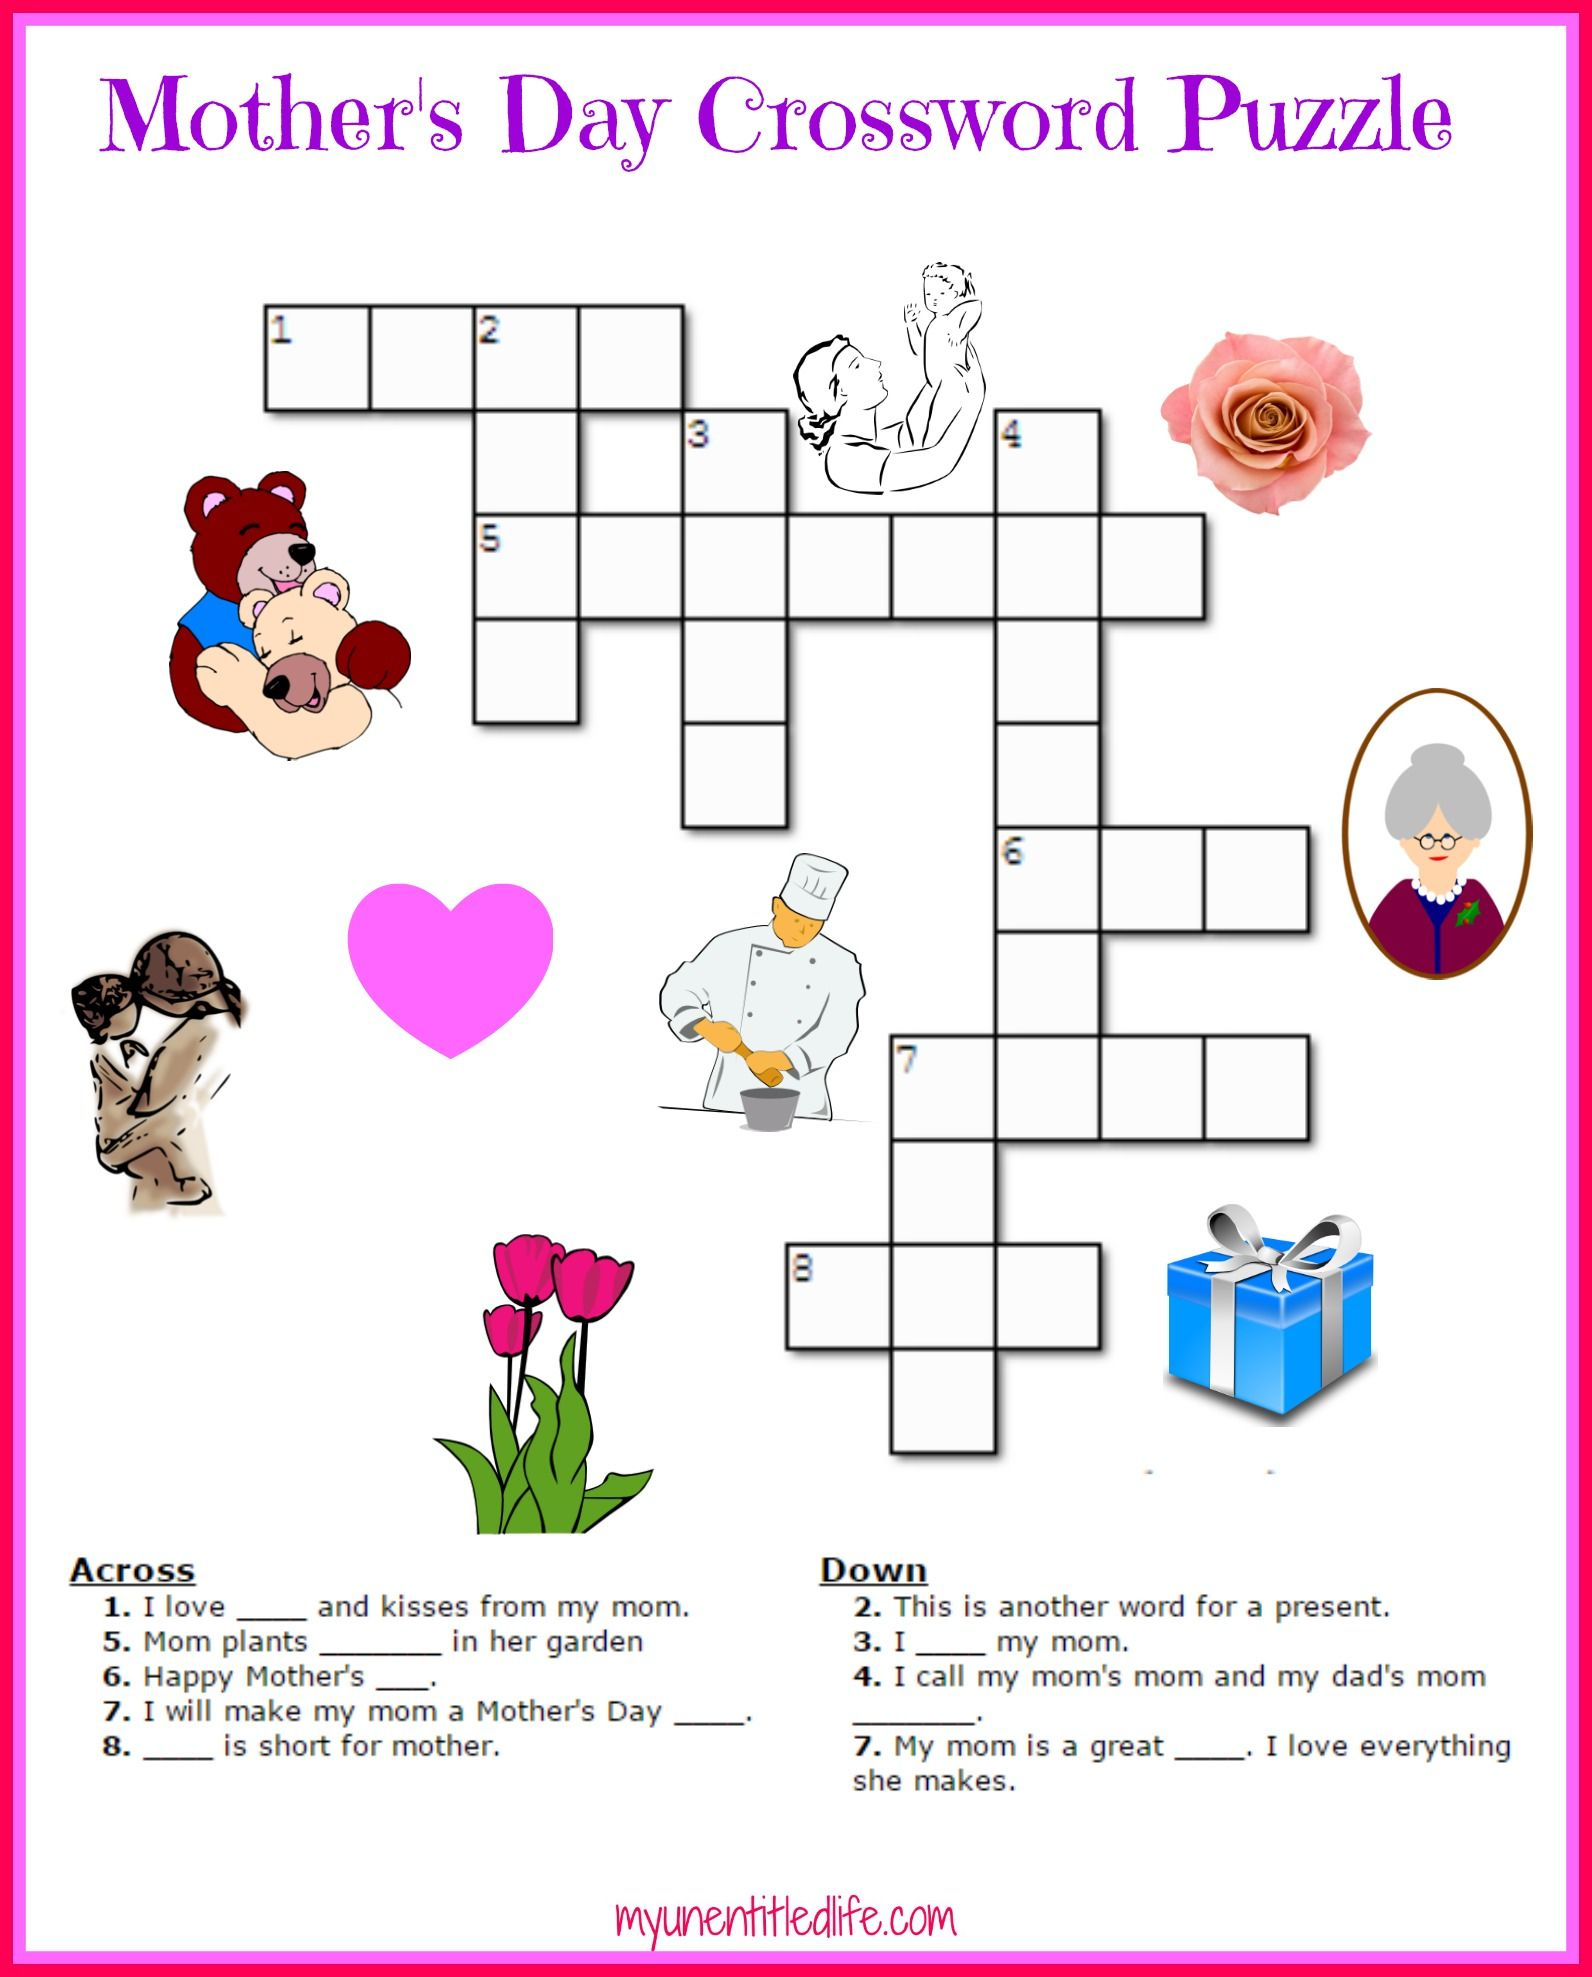 Free Mother's Day Crossword Puzzle Printable | Crafts For Kids - Printable Crossword Of The Day